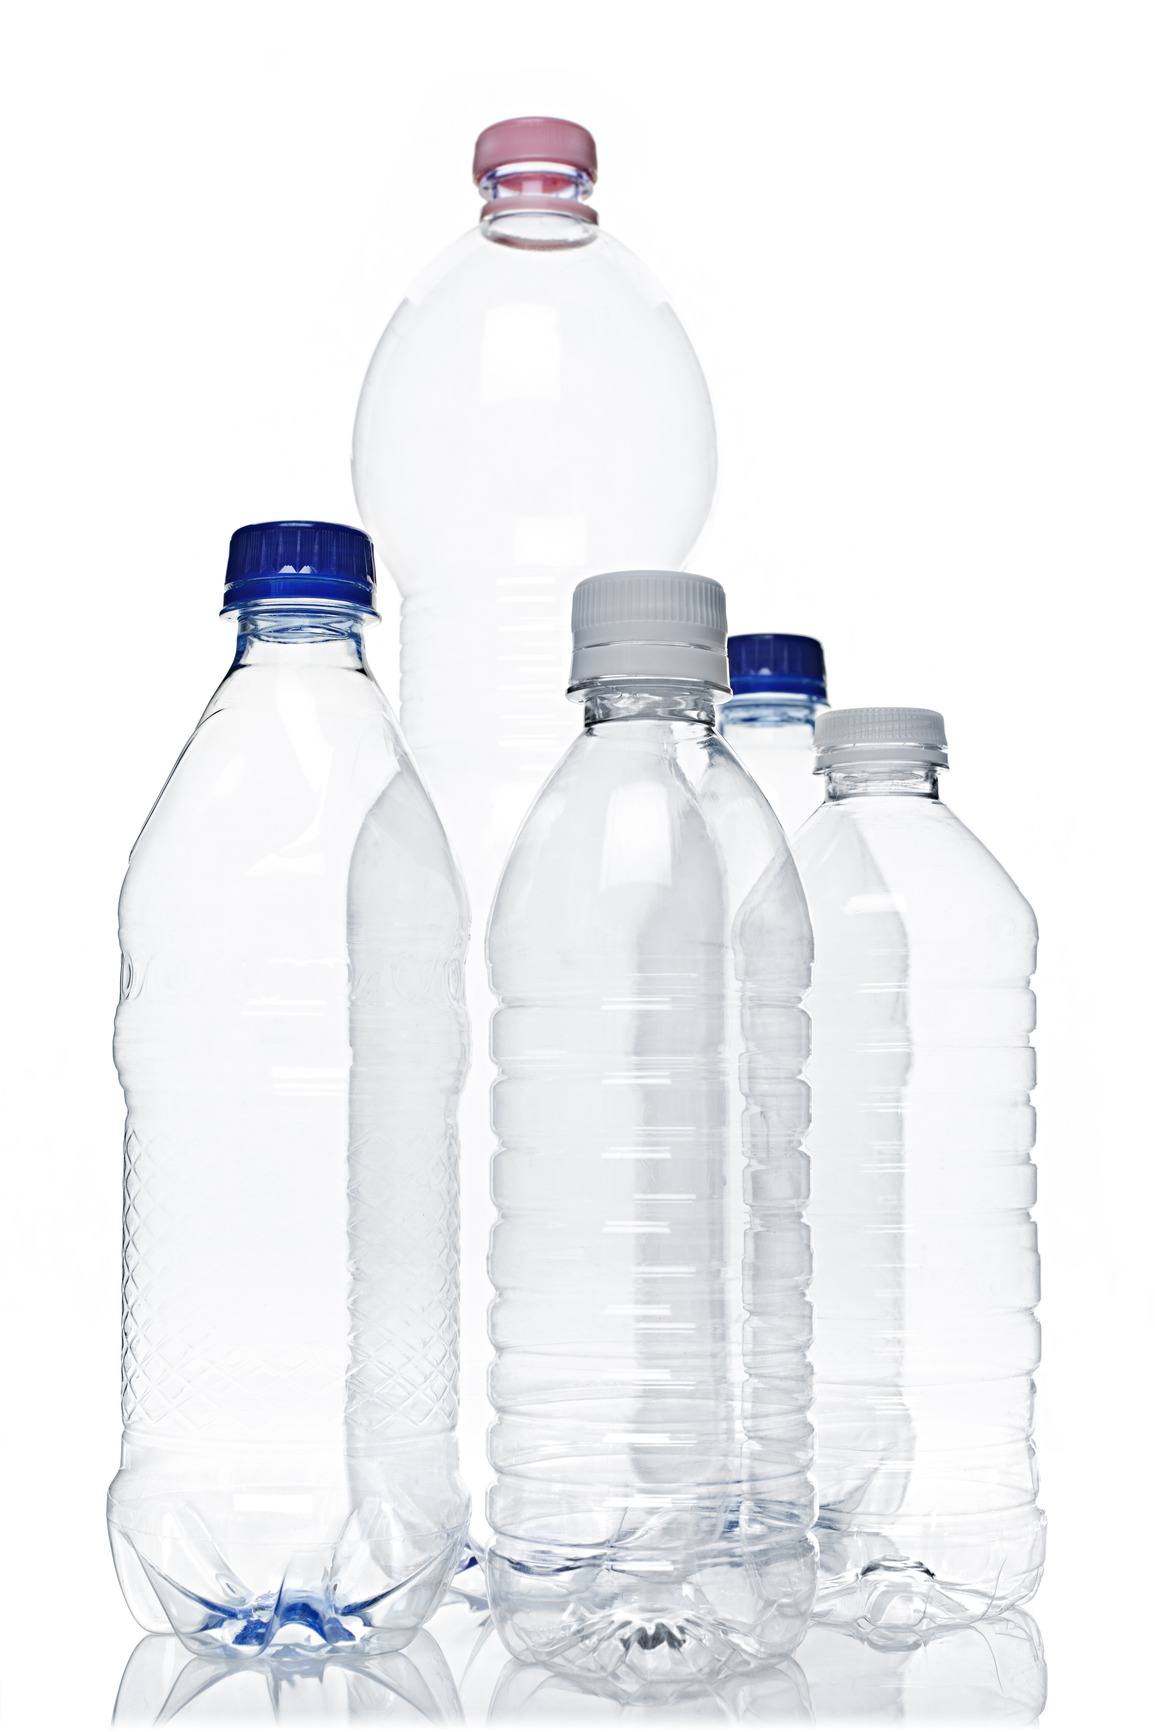 Plastic bottles png transparent plastic bottles png images for What to do with empty plastic bottles